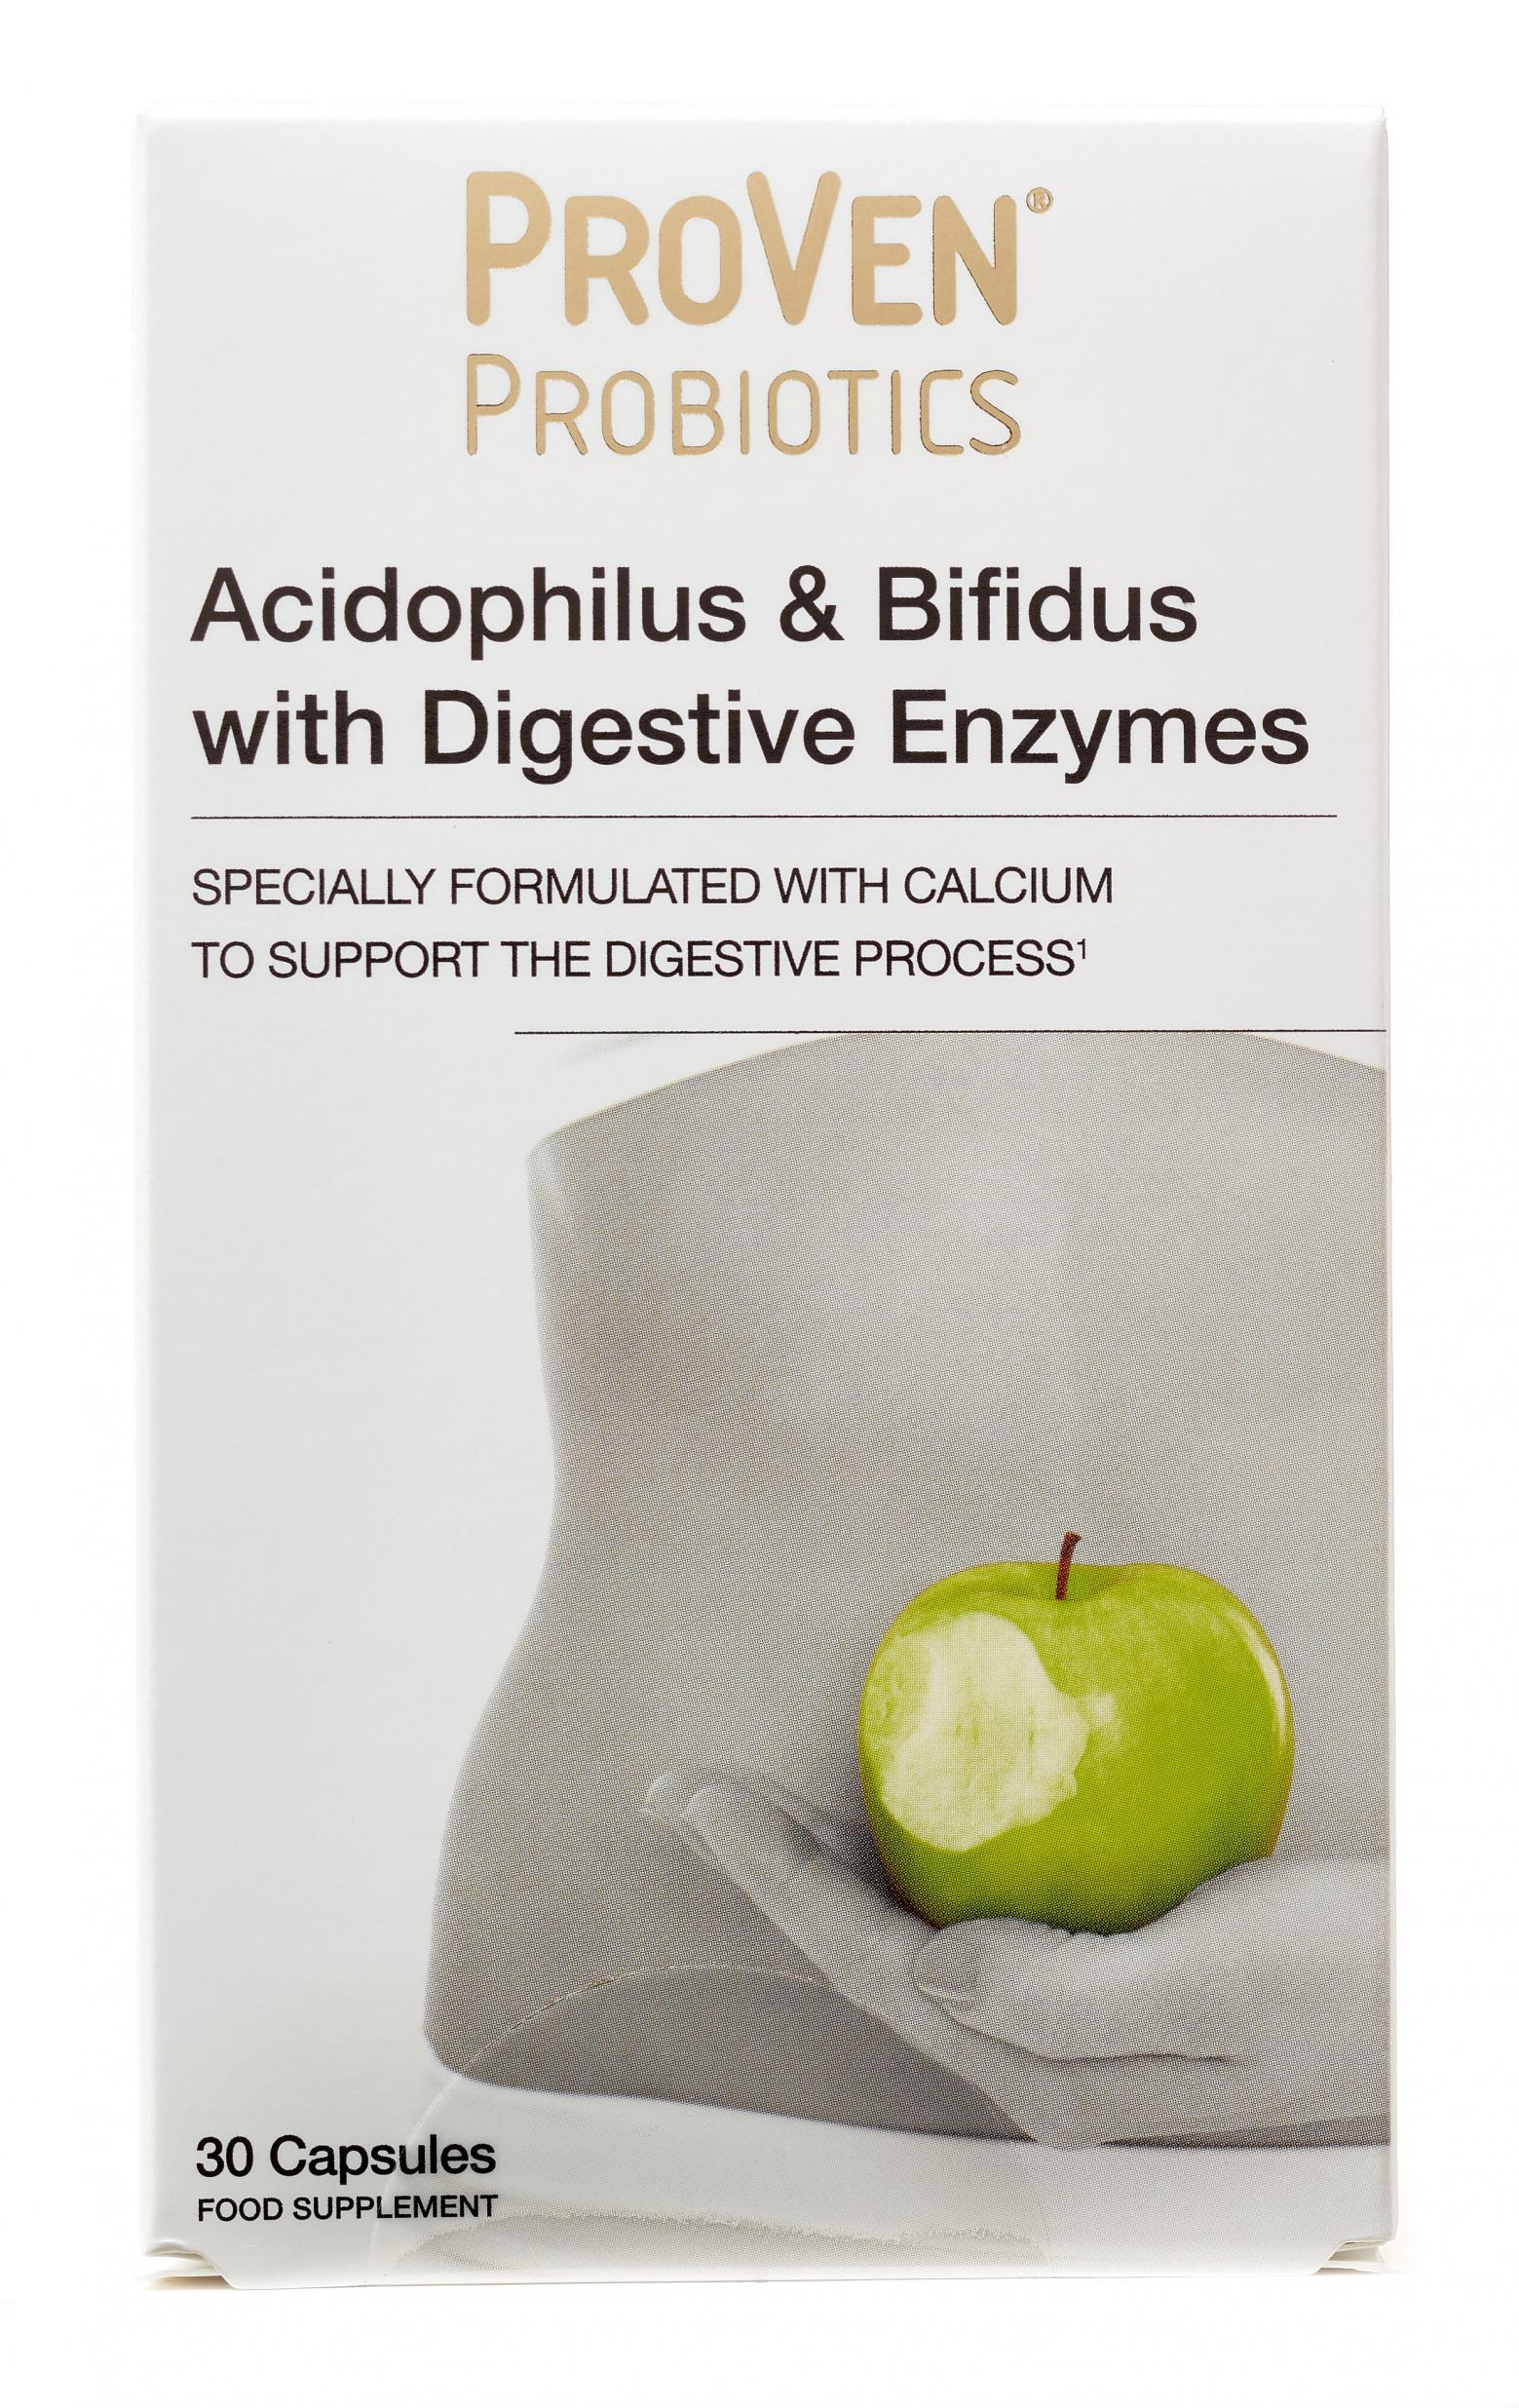 Acidophilus & Bifidus with Digestive Enzymes 30's